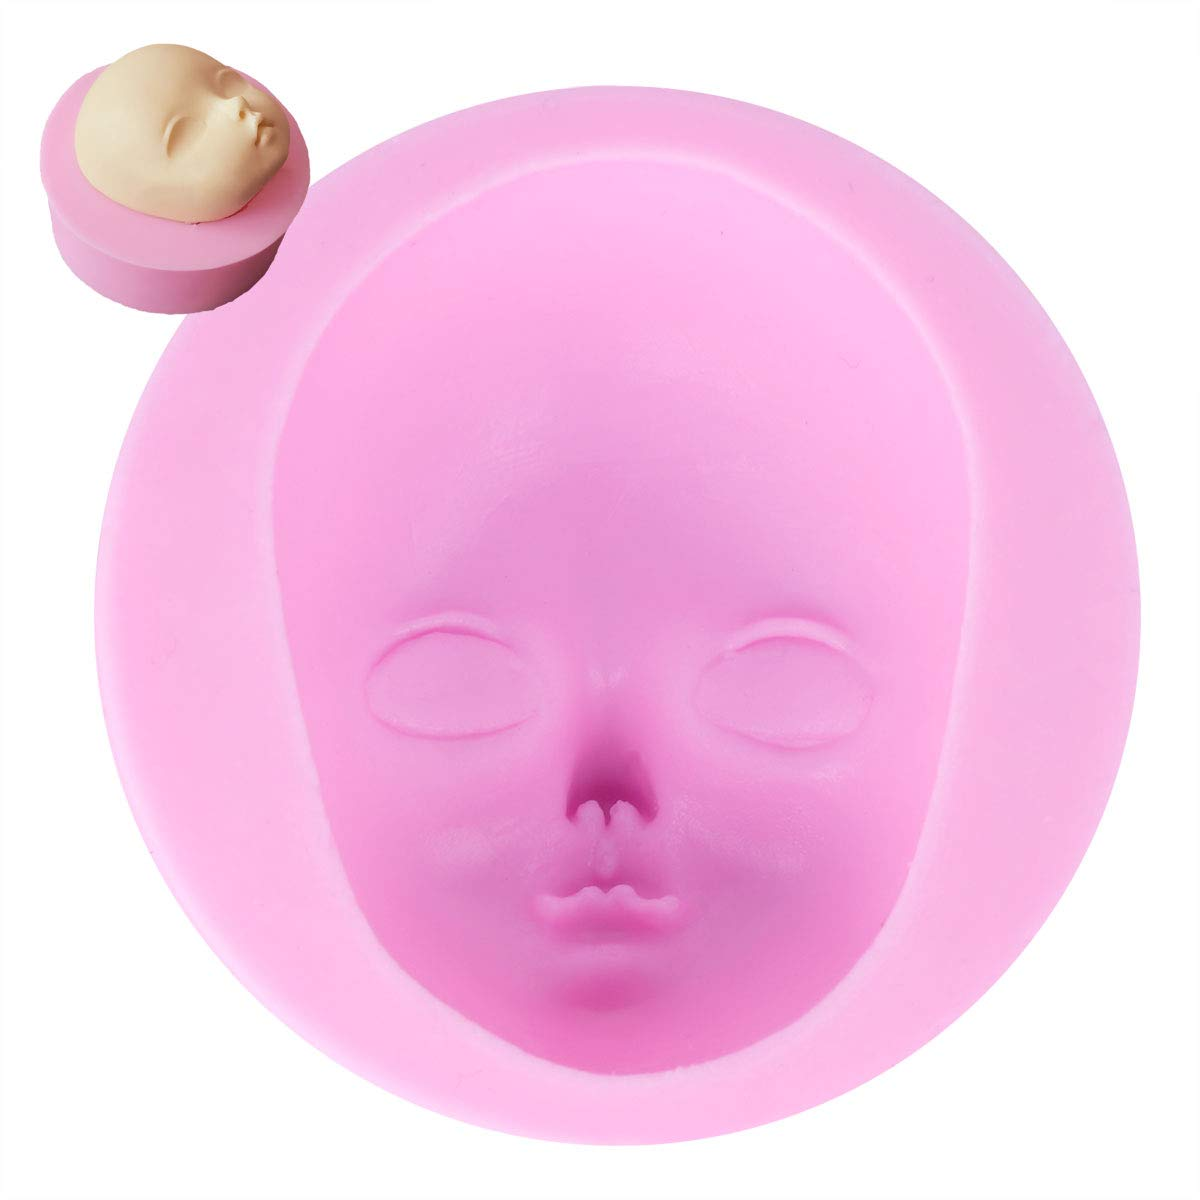 Freebily Cute 3D Dolls Face Silicone Cake Decorative Fondant Mold Sugarcraft Handmade Polymer Clay Mould Chocolate Candy Baking Tools